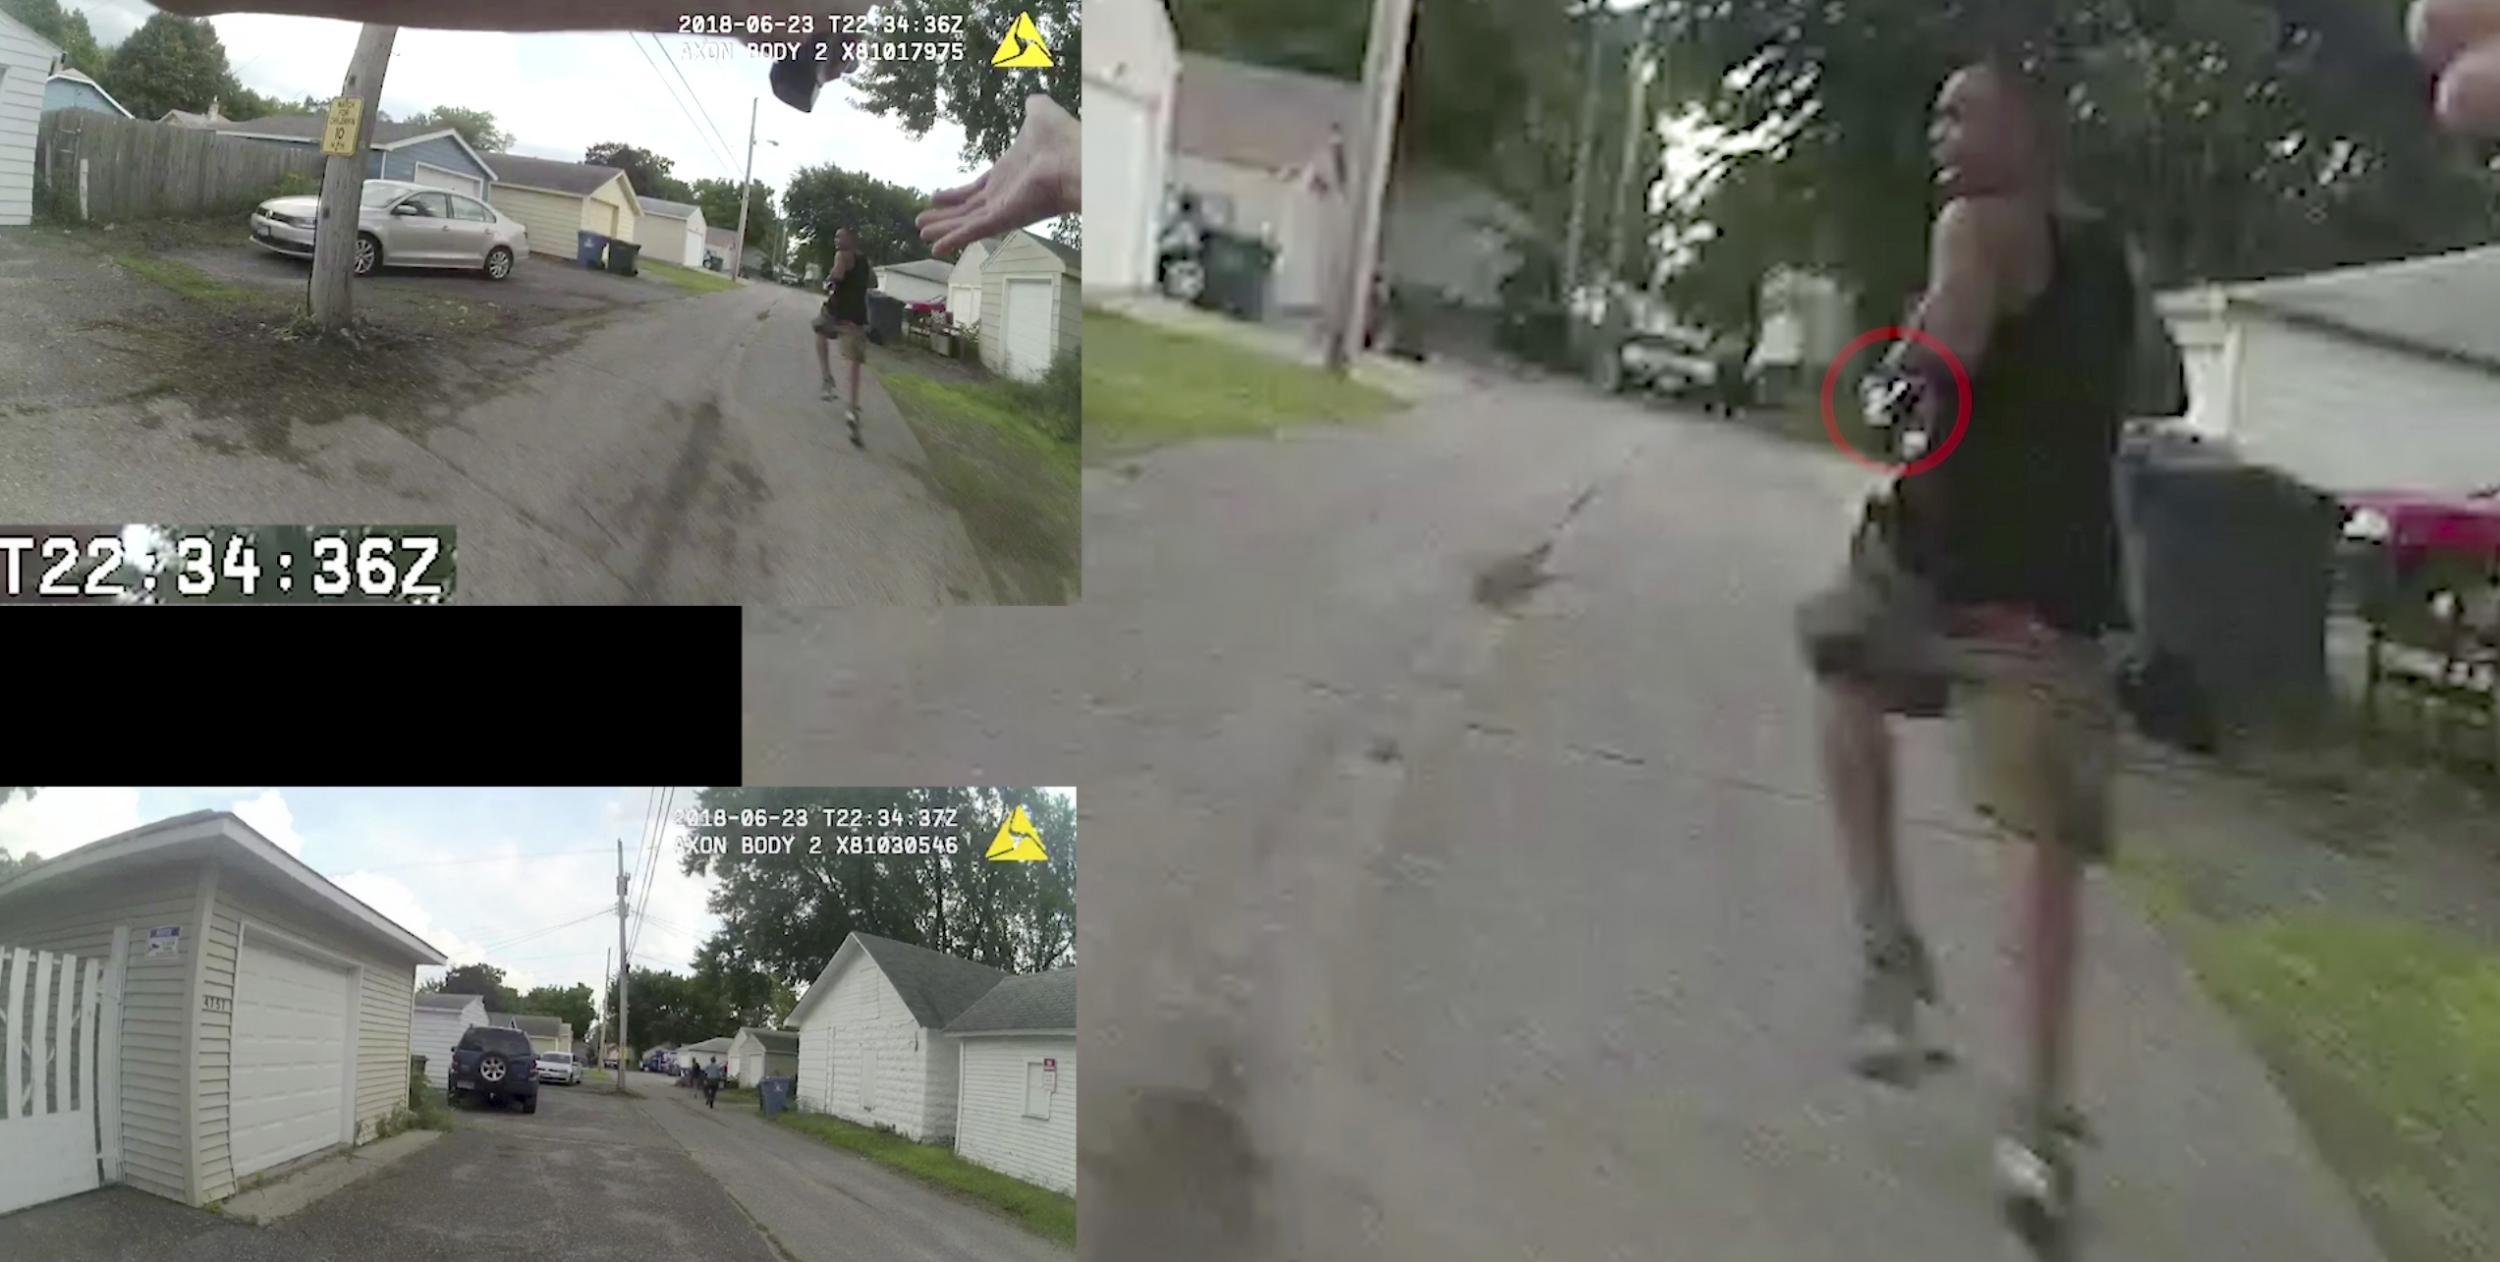 Minneapolis police release body cam footage from Thurman Blevins shooting